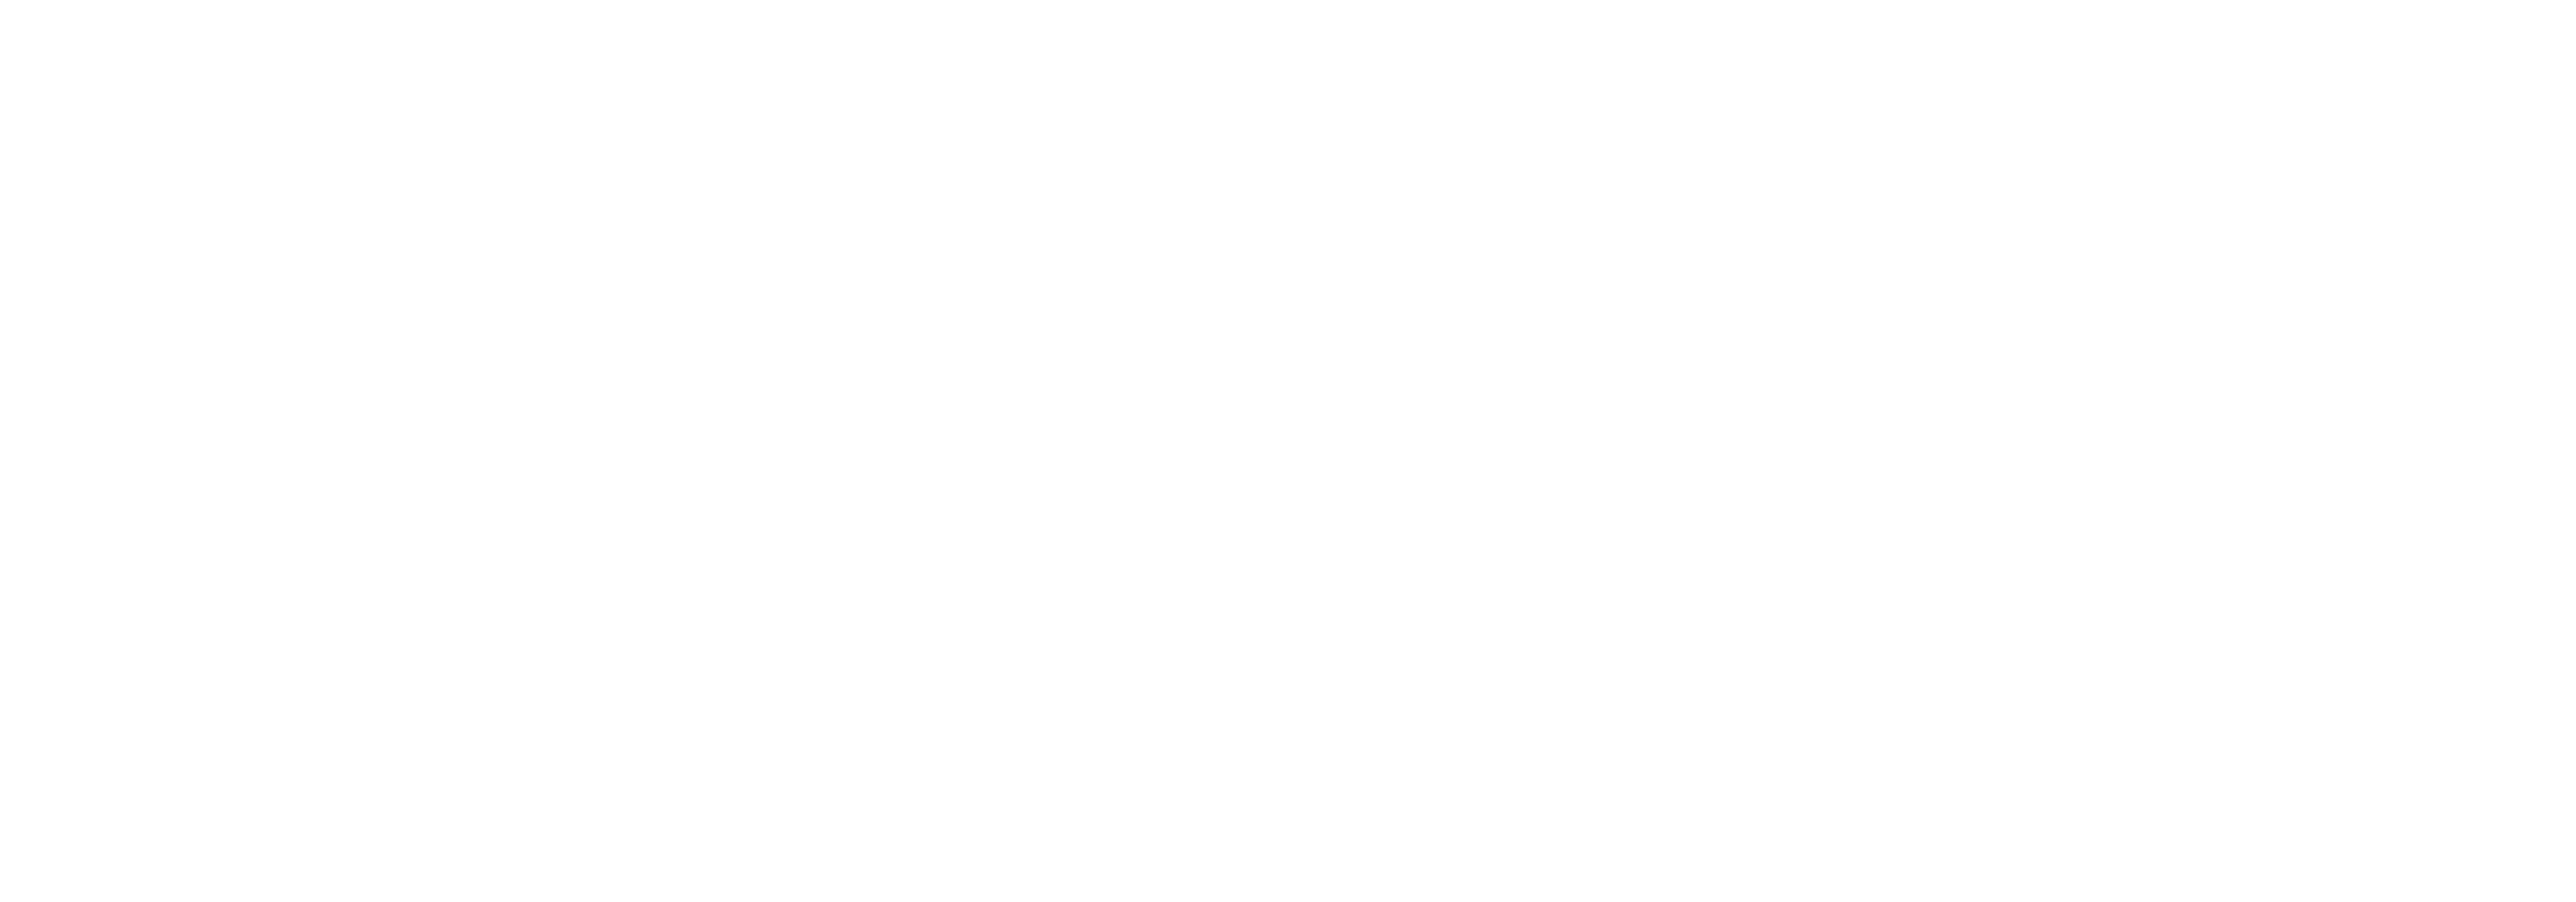 Scentiments Floral Ltd. - Flower Delivery in Prince Albert, SK